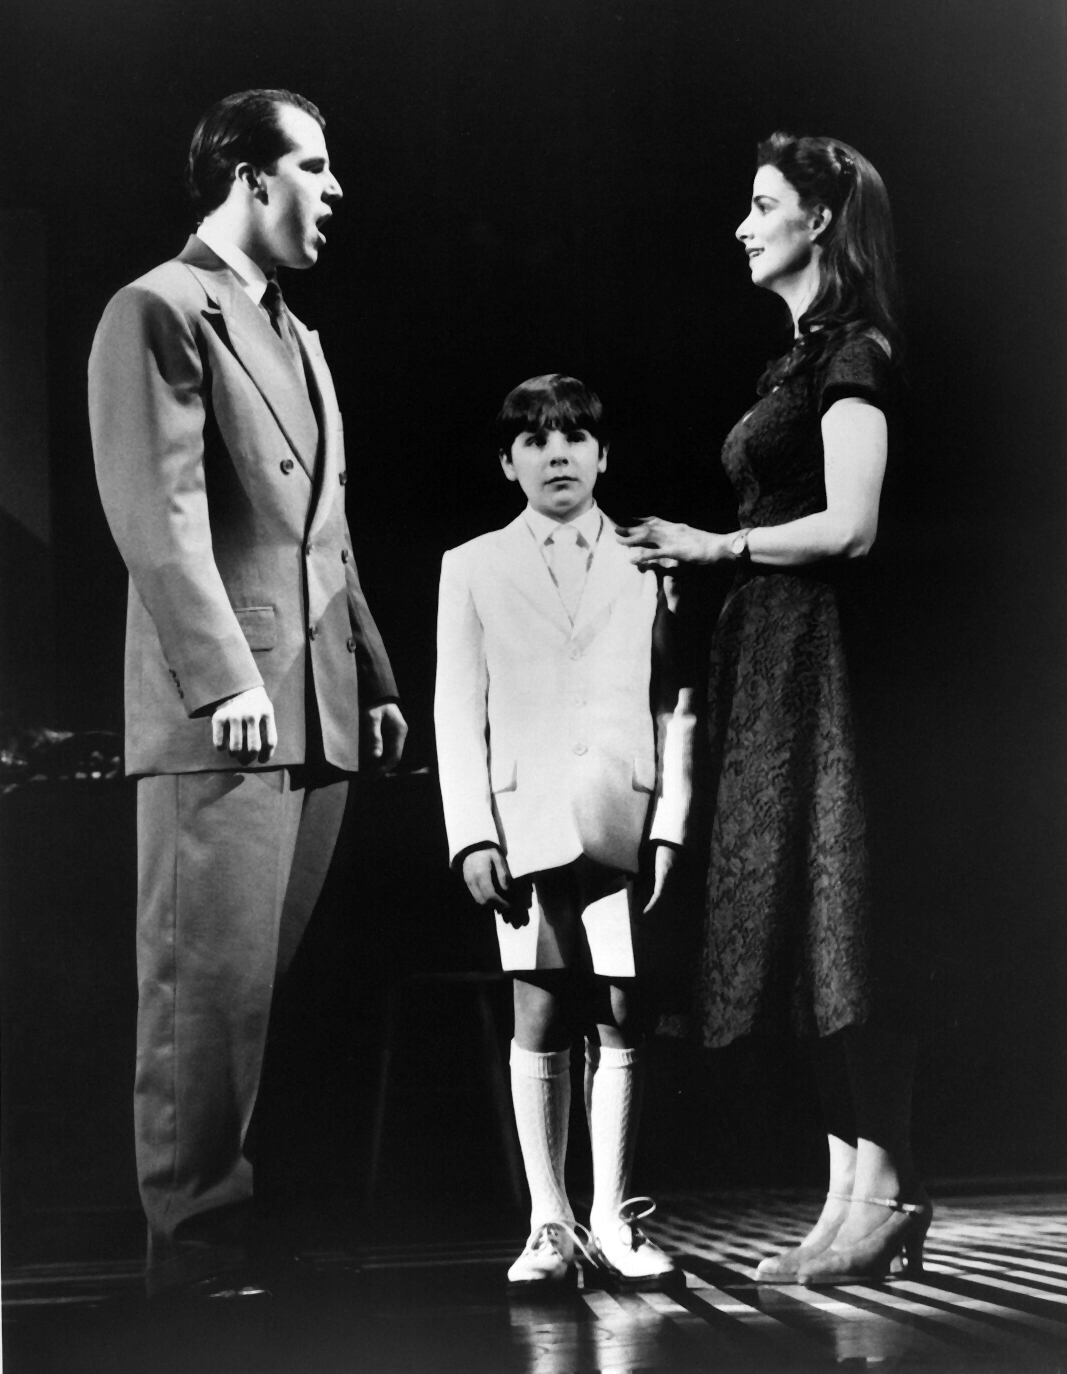 From left to right, Johnathan Dokuchwitz, Buddy Smith, and Marcia Mitzman